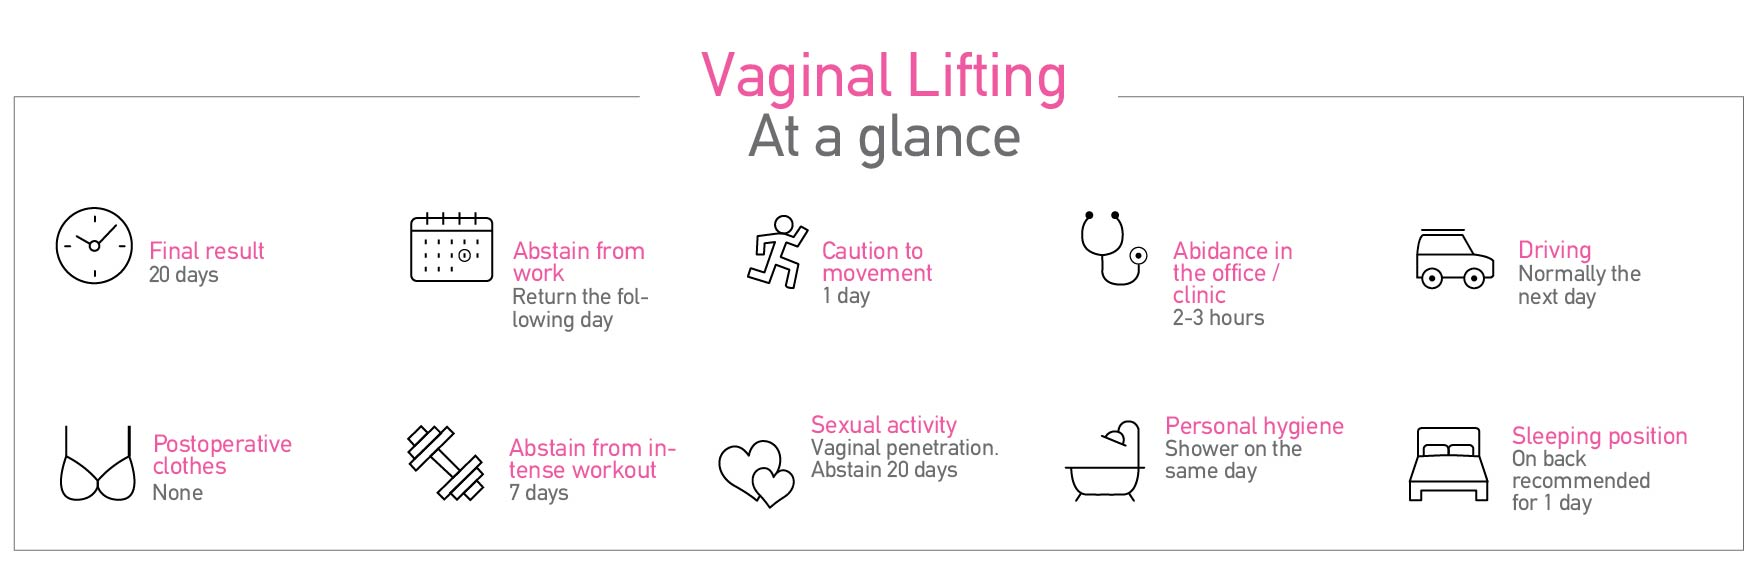 Vaginal Lifting